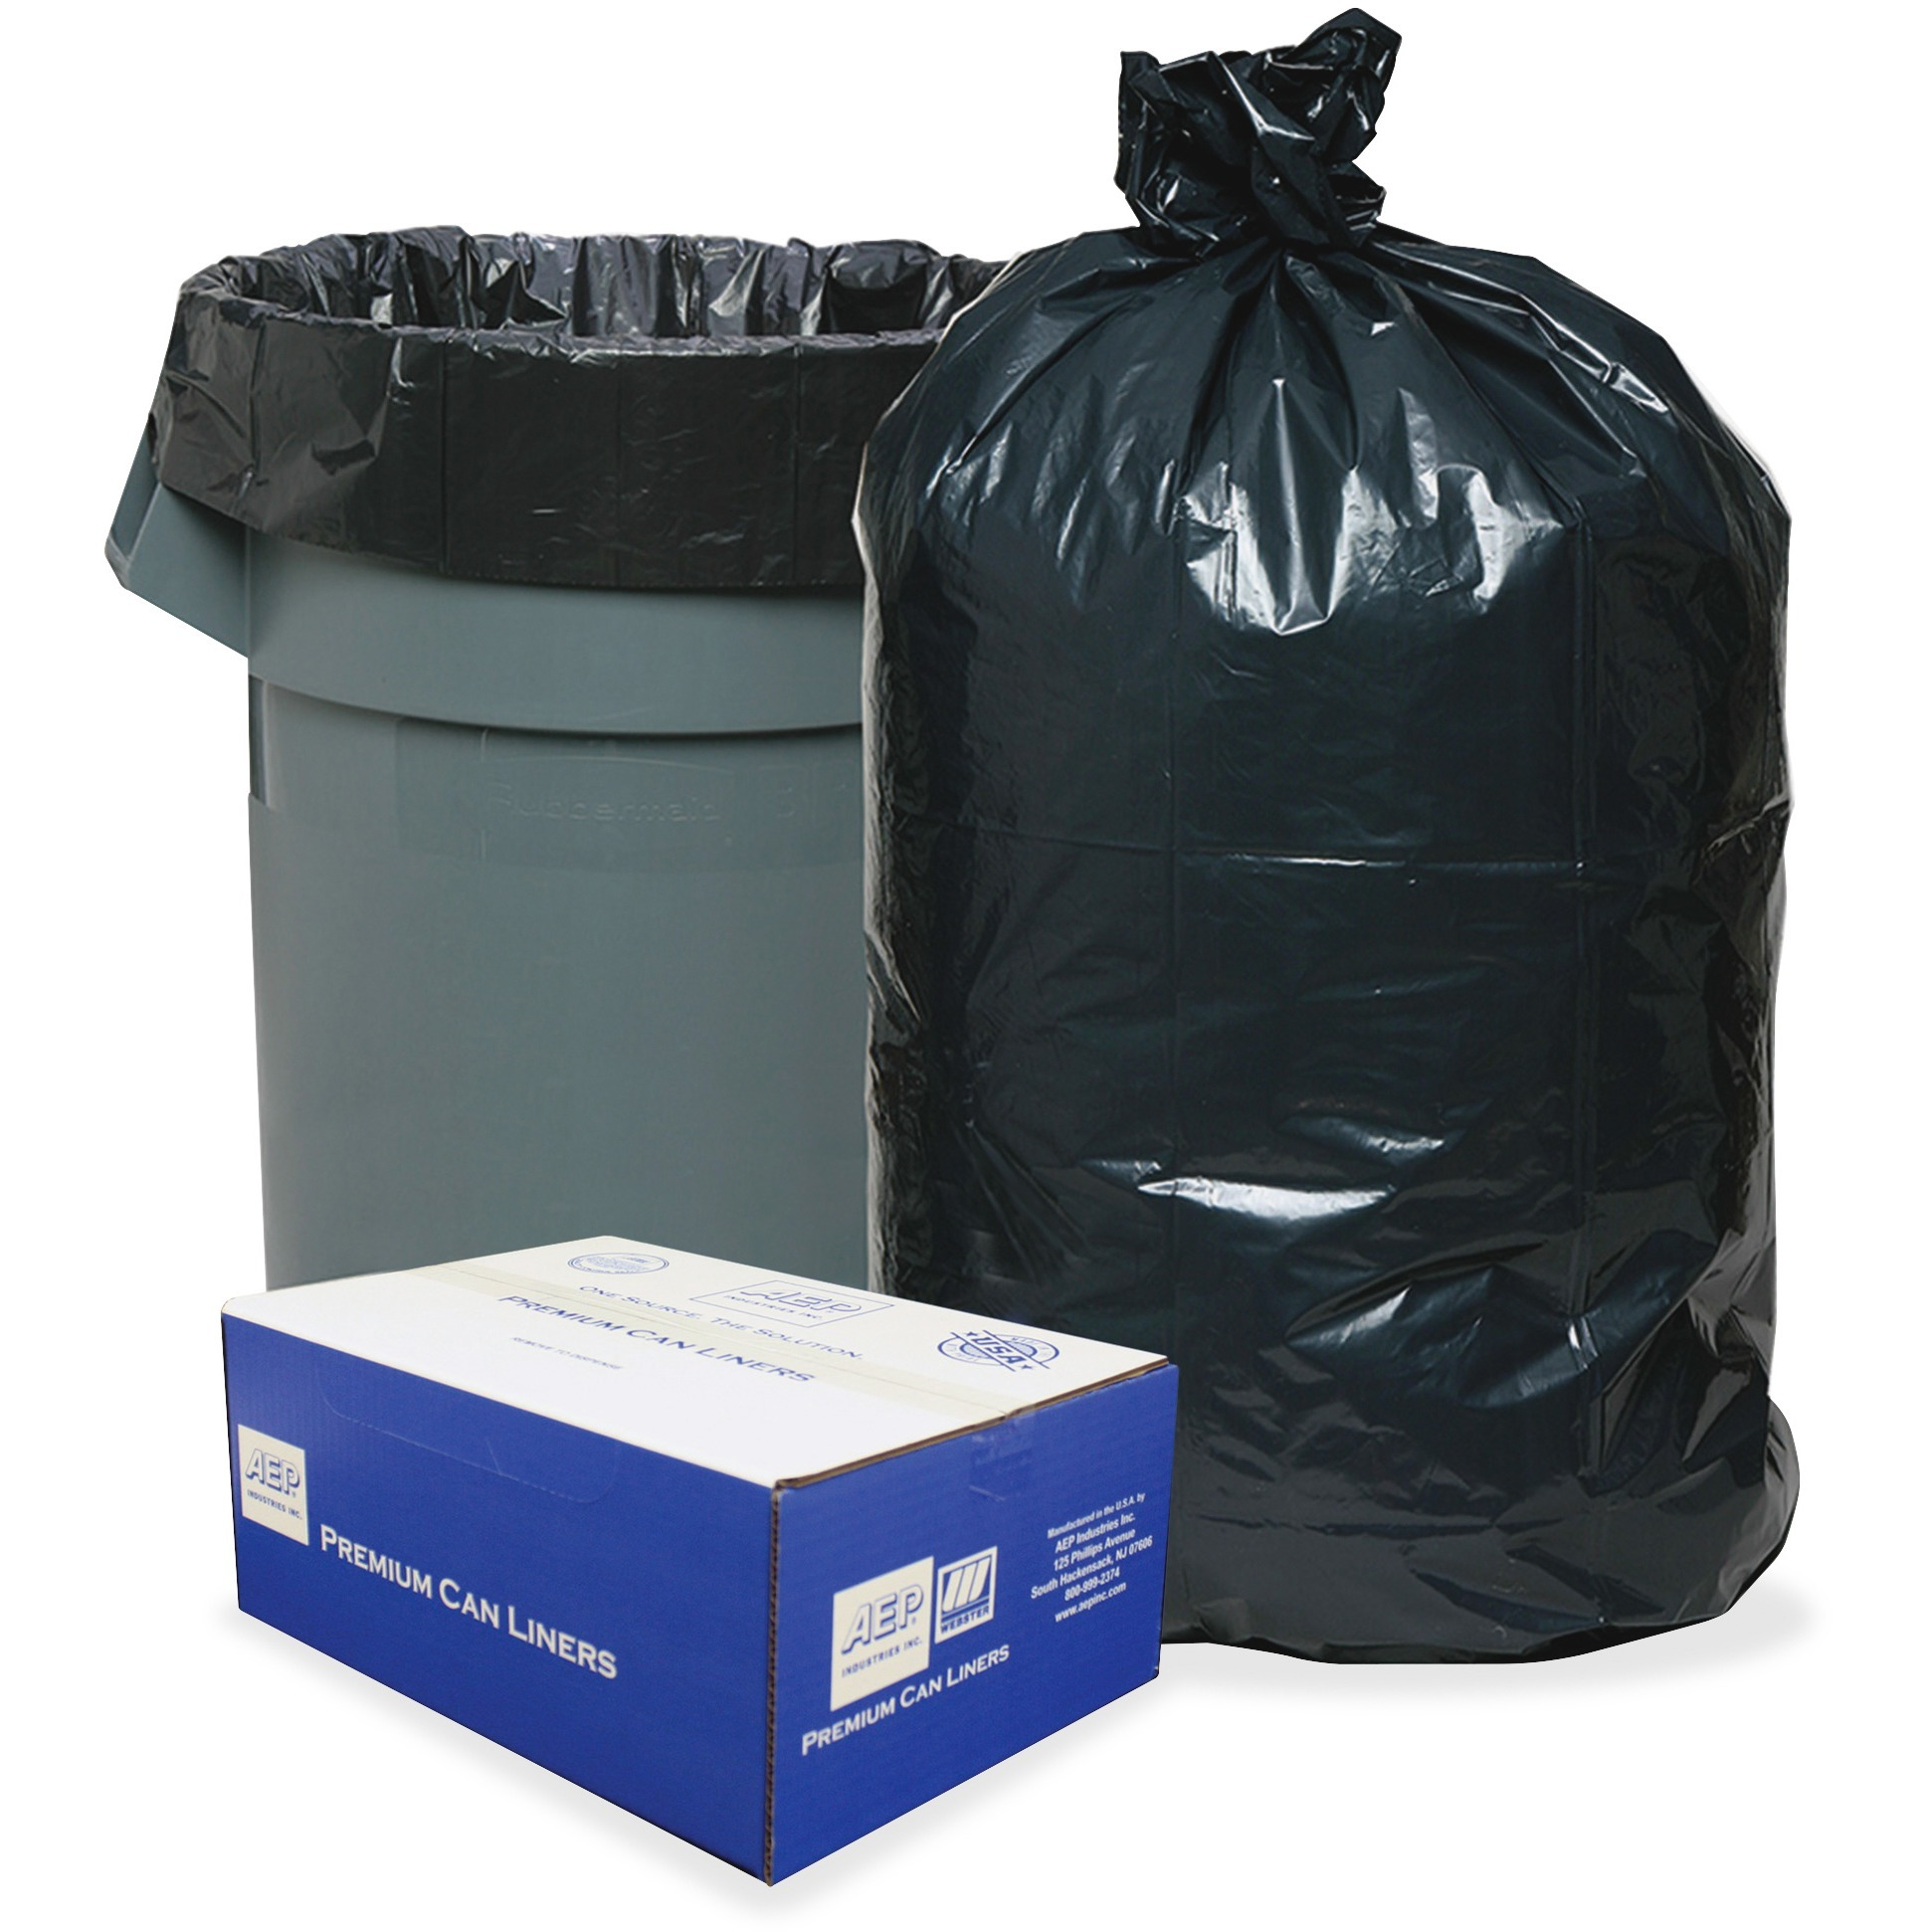 Webster Heavy-Duty Opaque Low-Density Liners, 30 Gallon, 250 Count